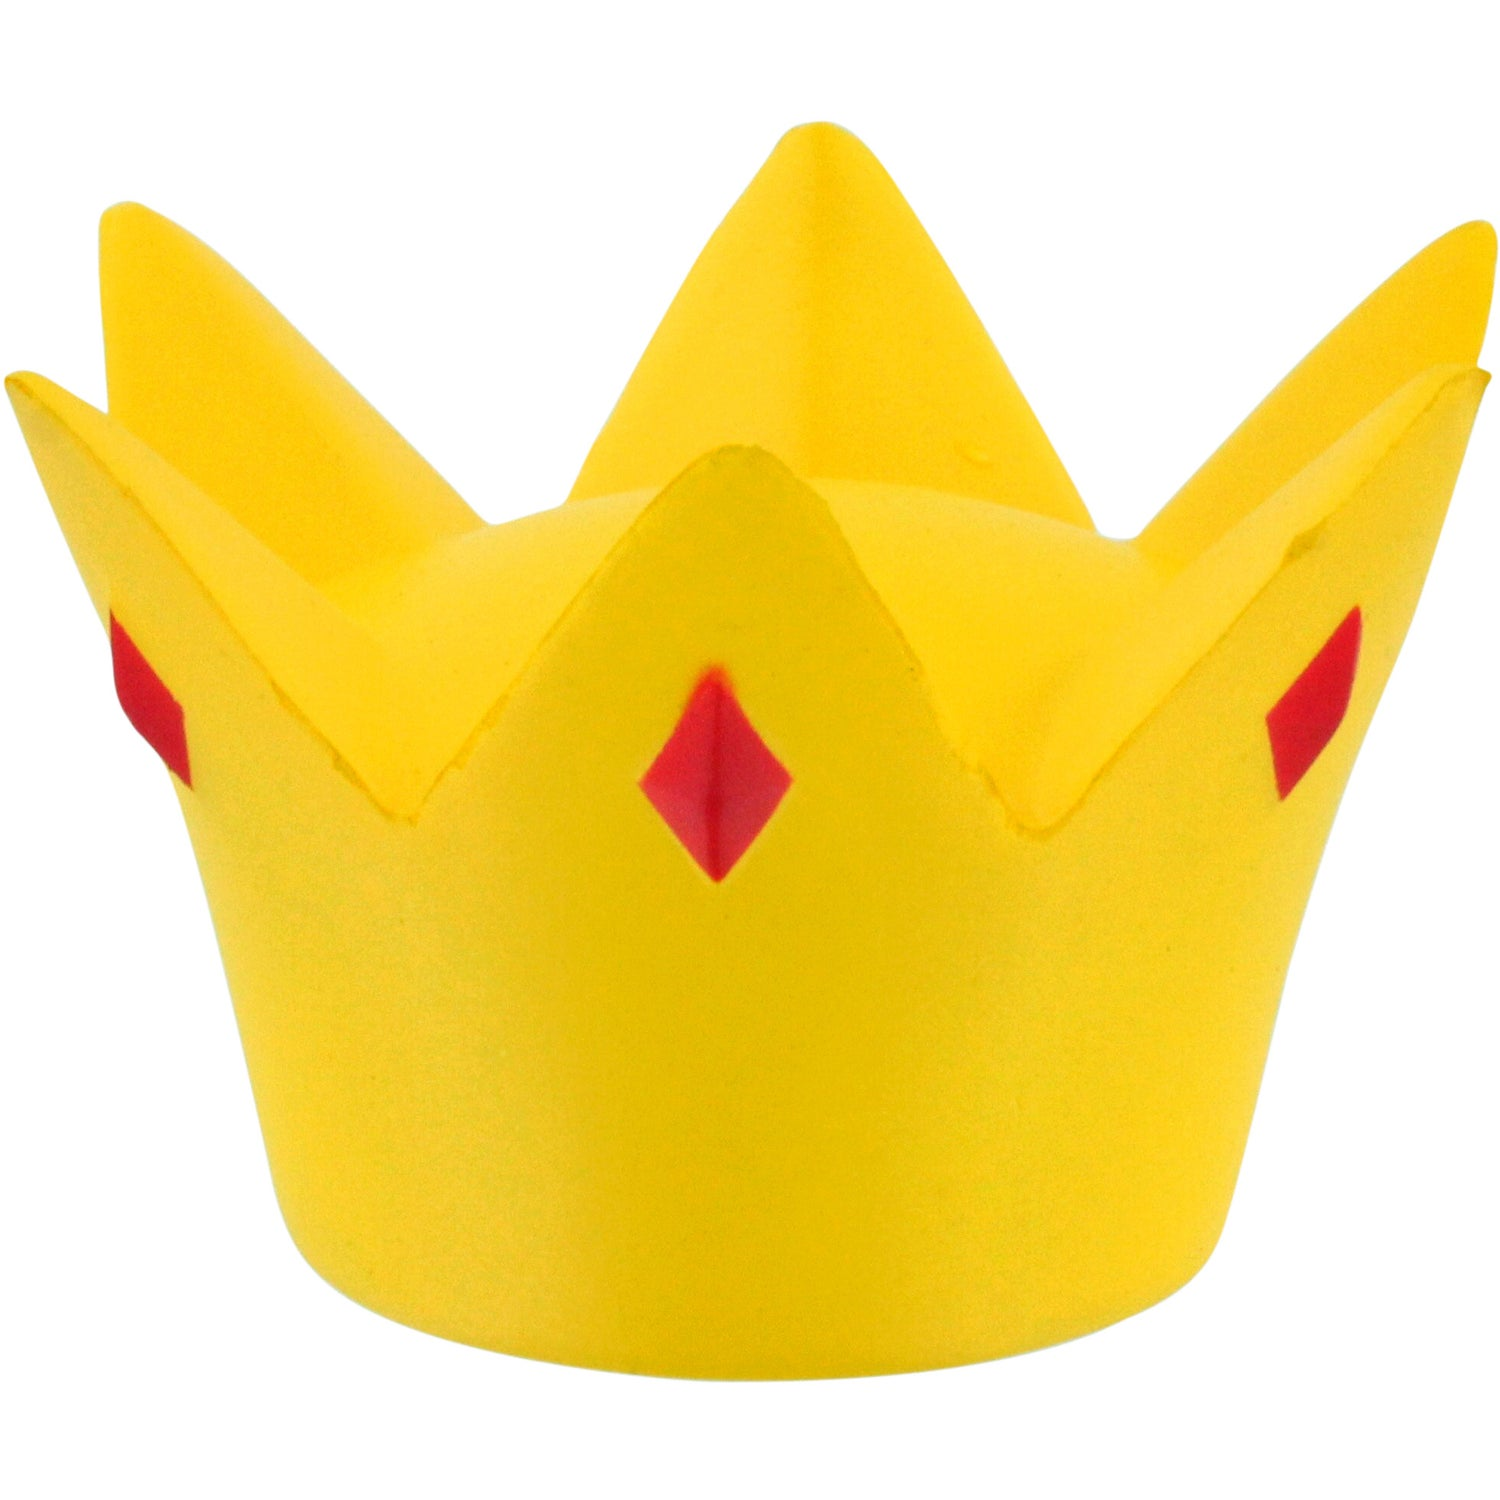 promotional crown stress balls with custom logo for 1 86 ea